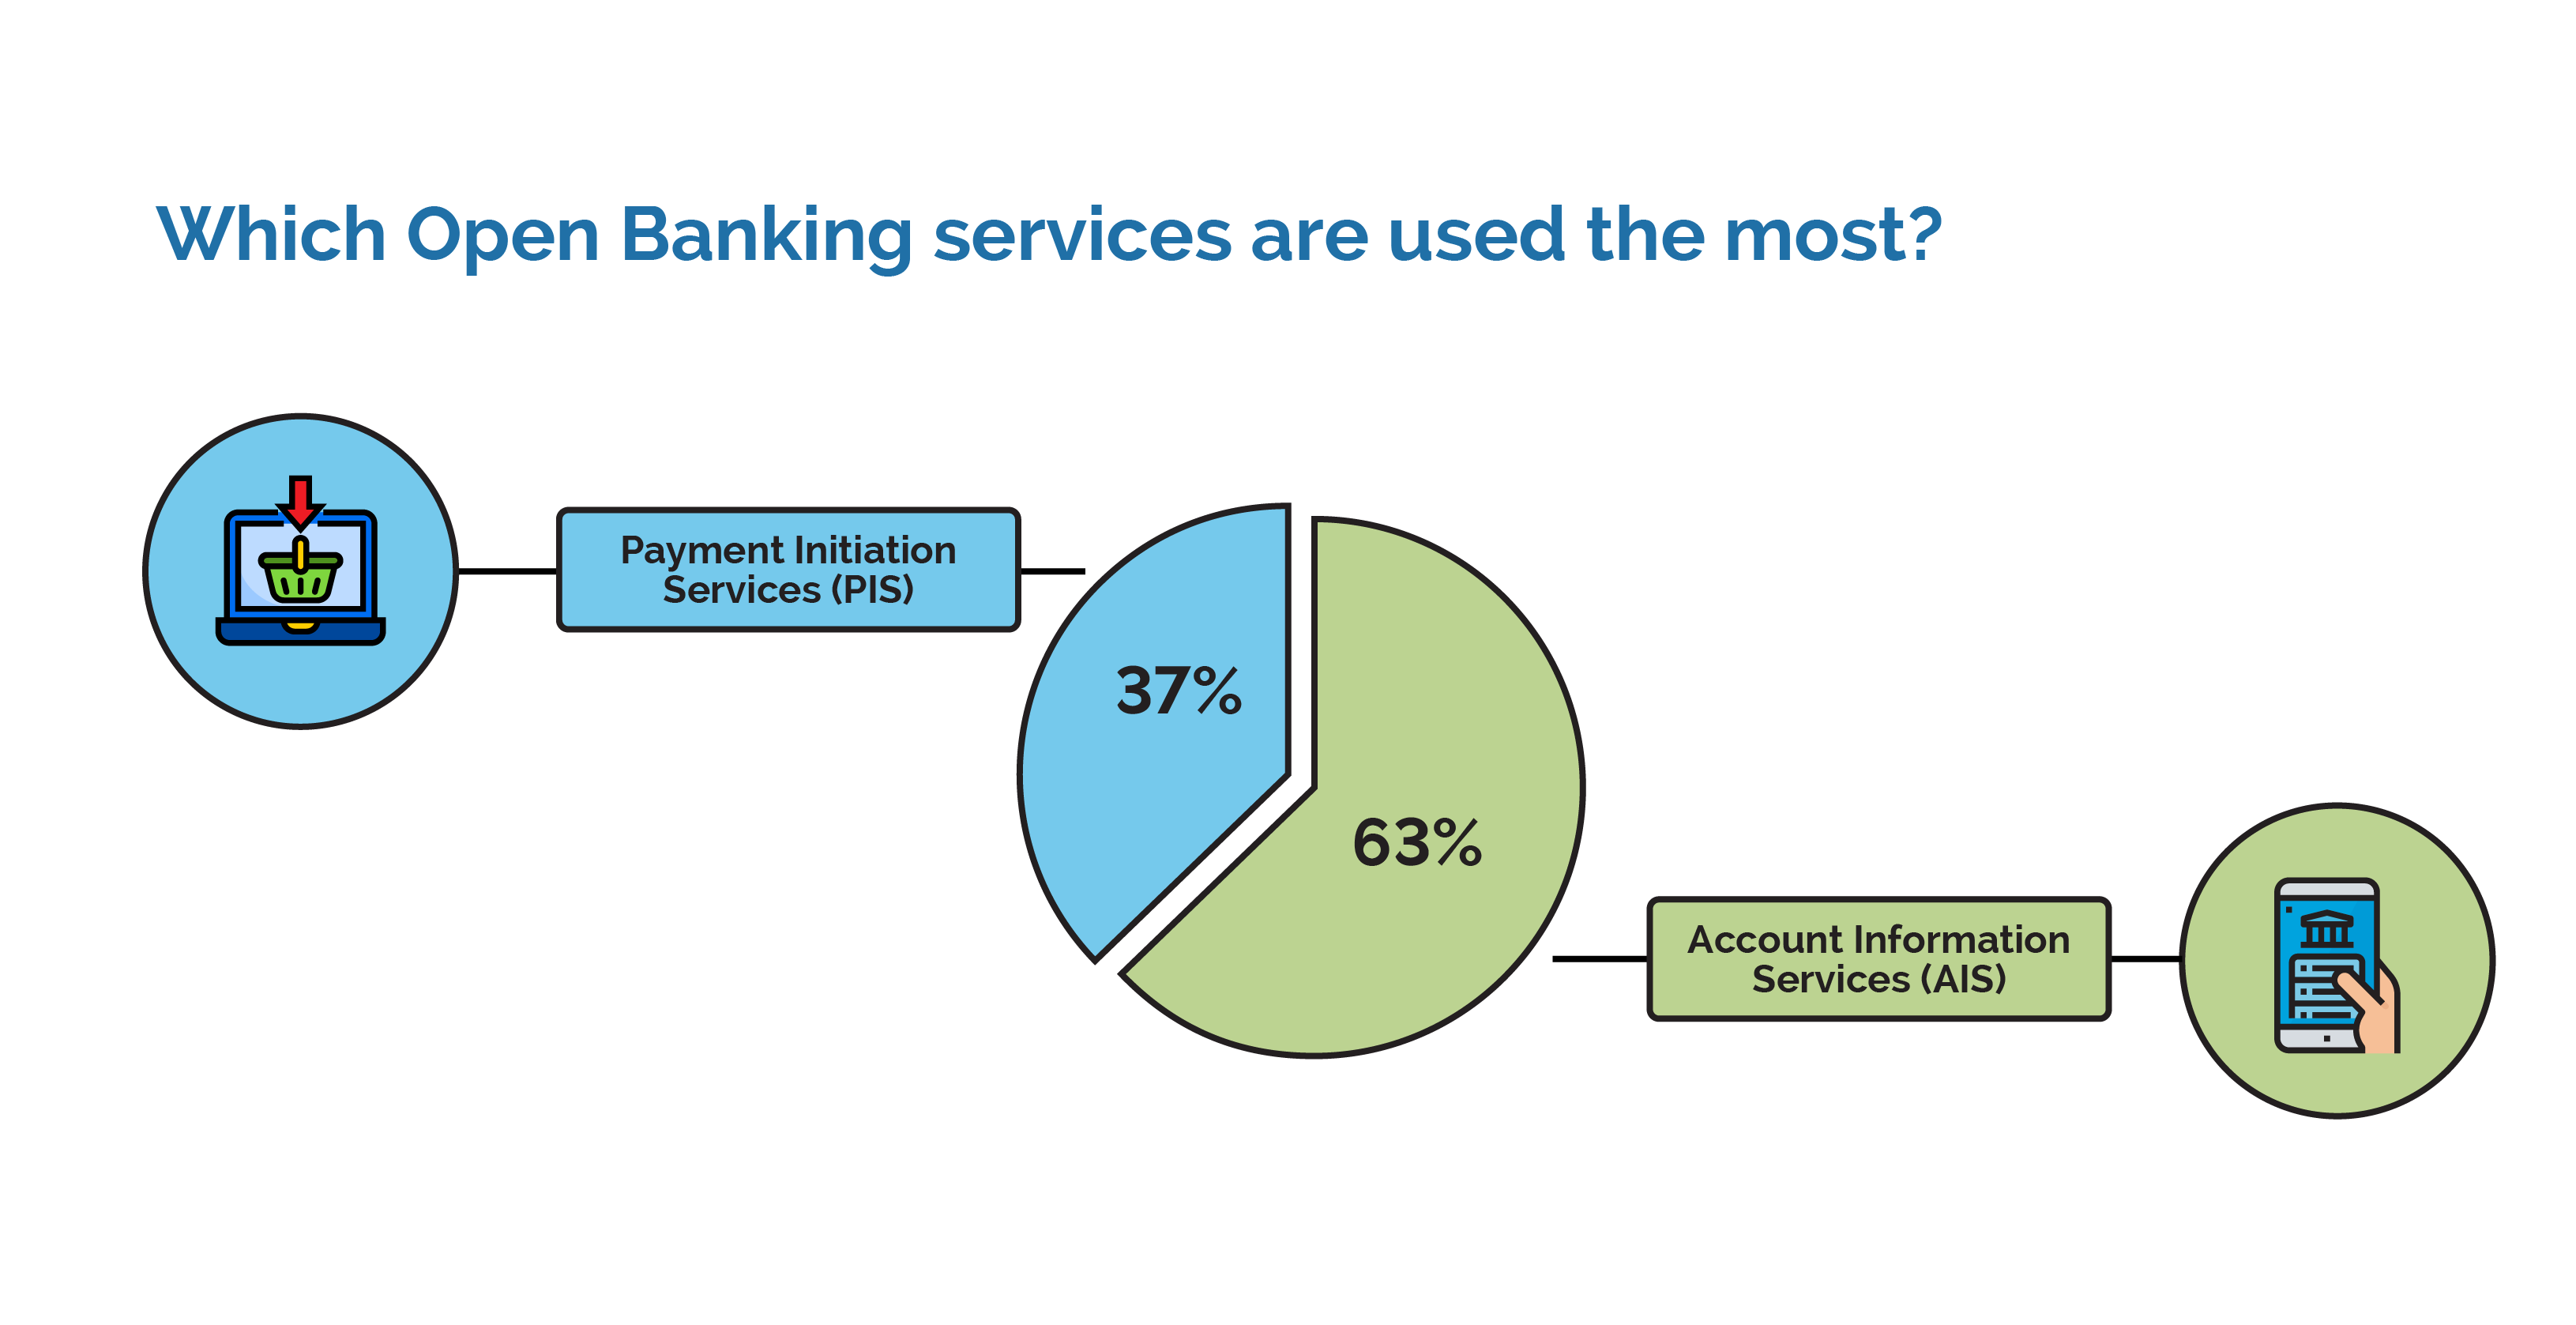 Which Open Banking service are used the most?